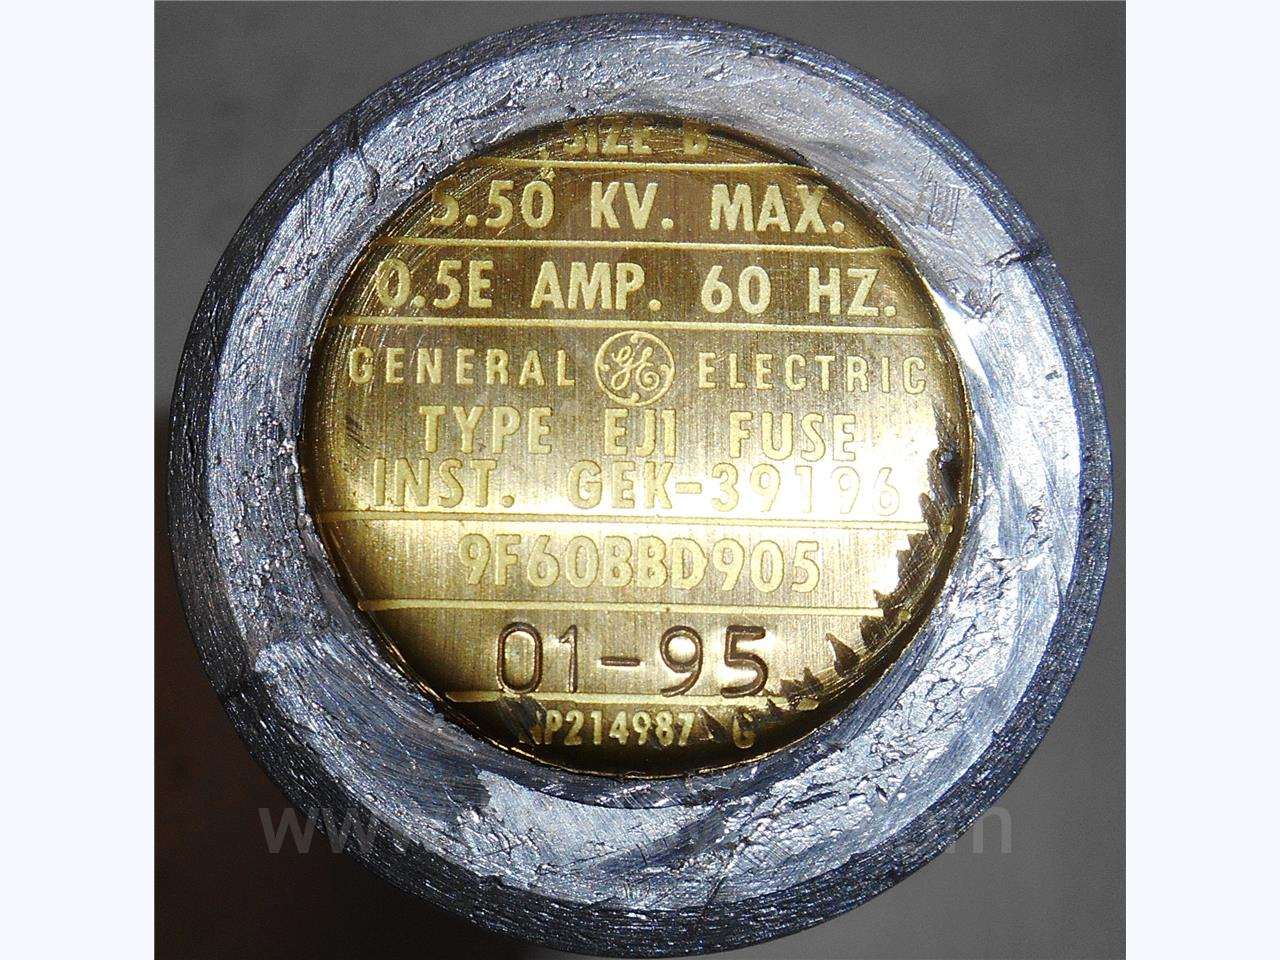 General Electric 0.5E GE EJ-1 POWER FUSE 5KV